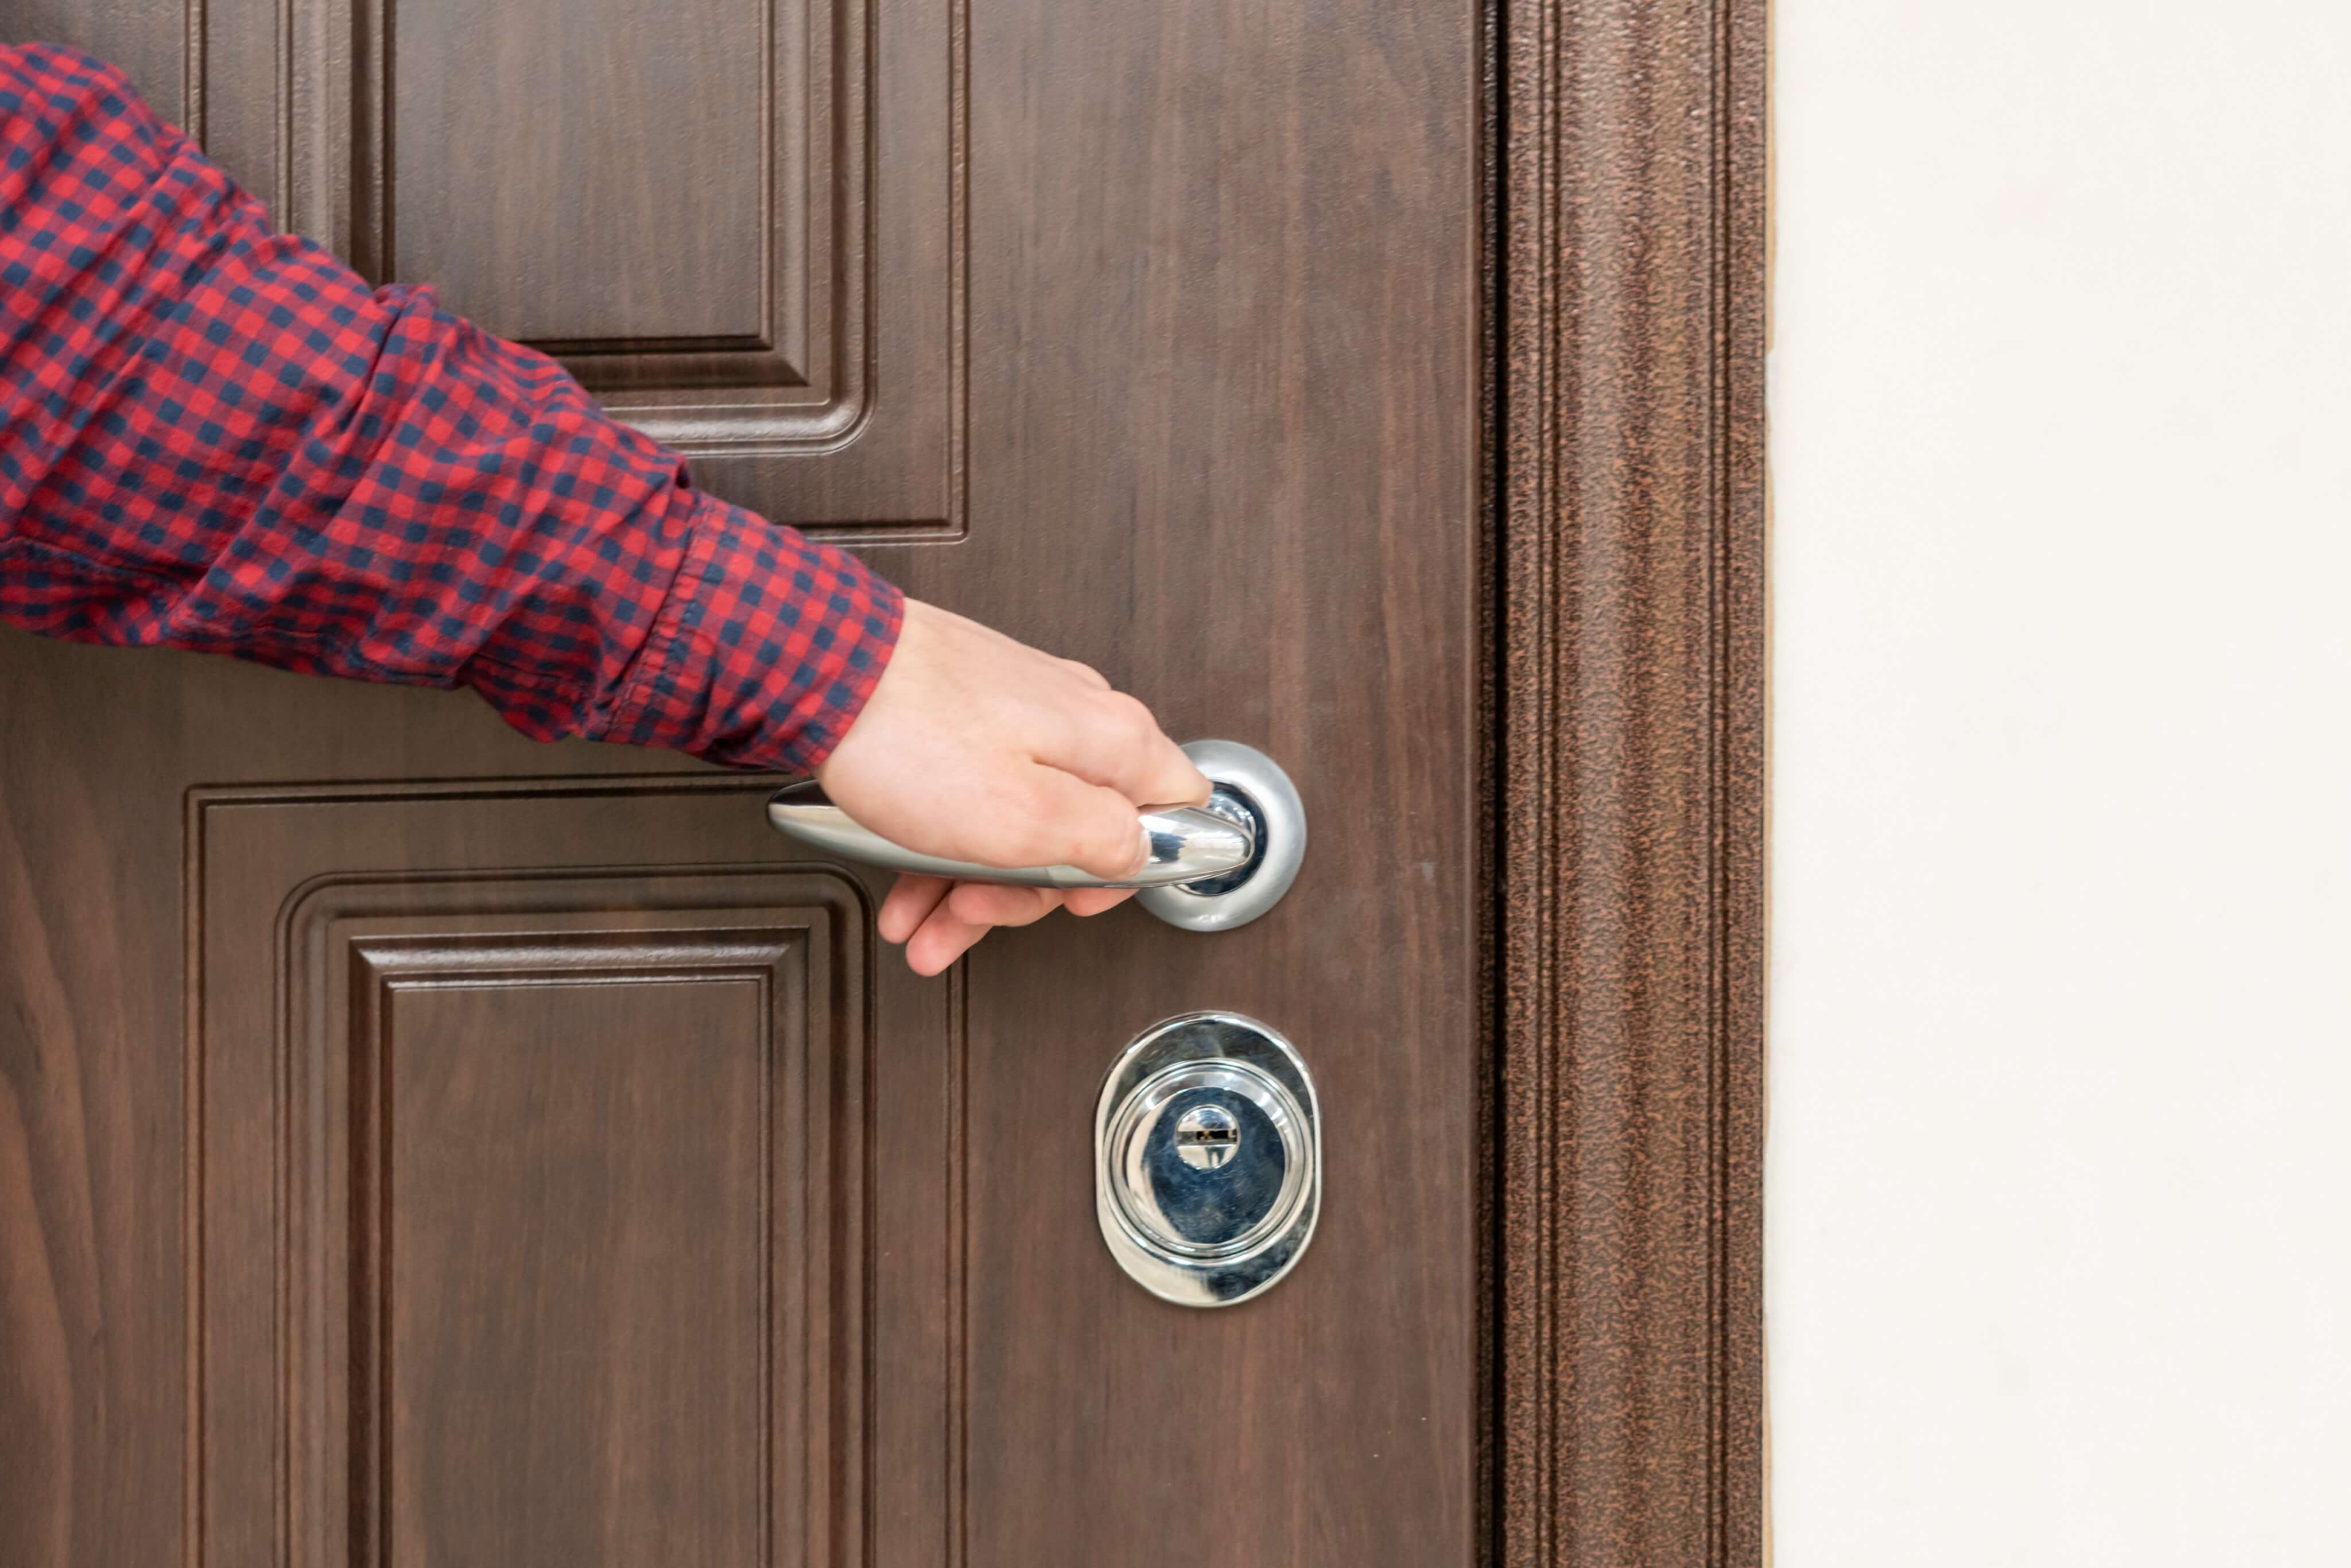 A Residential Locksmith's Tips for Preventing Break-Ins Before They Happen